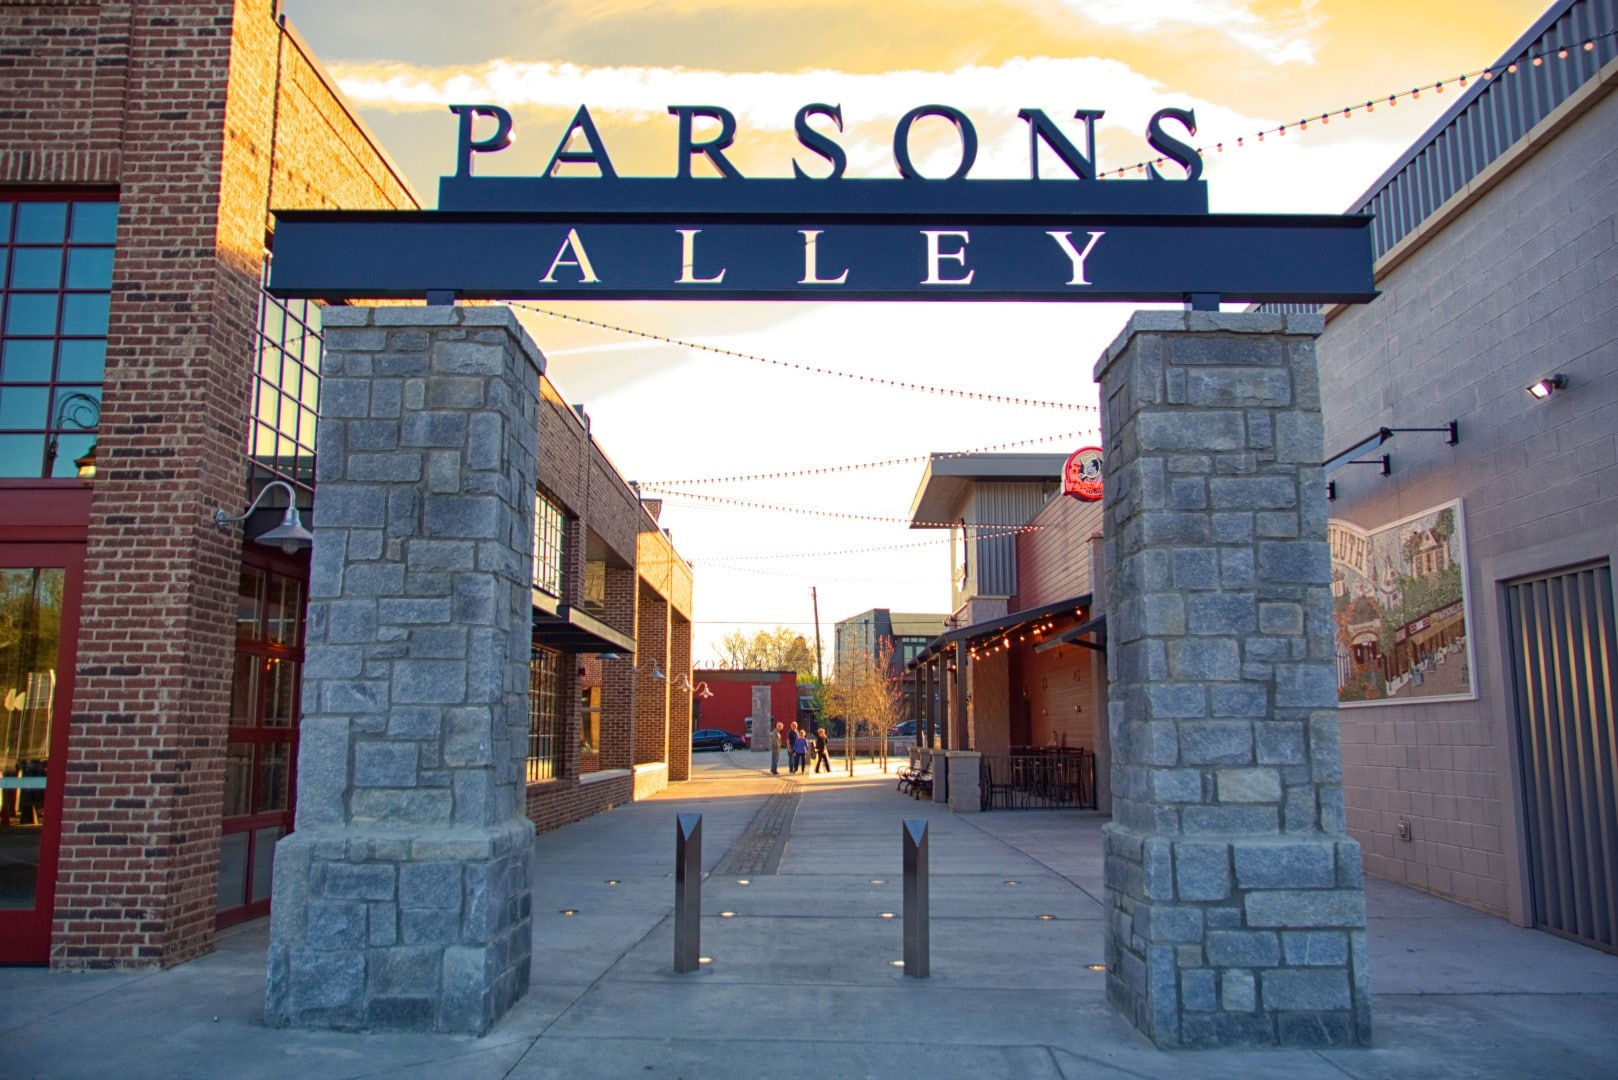 Parsons Alley - The Block